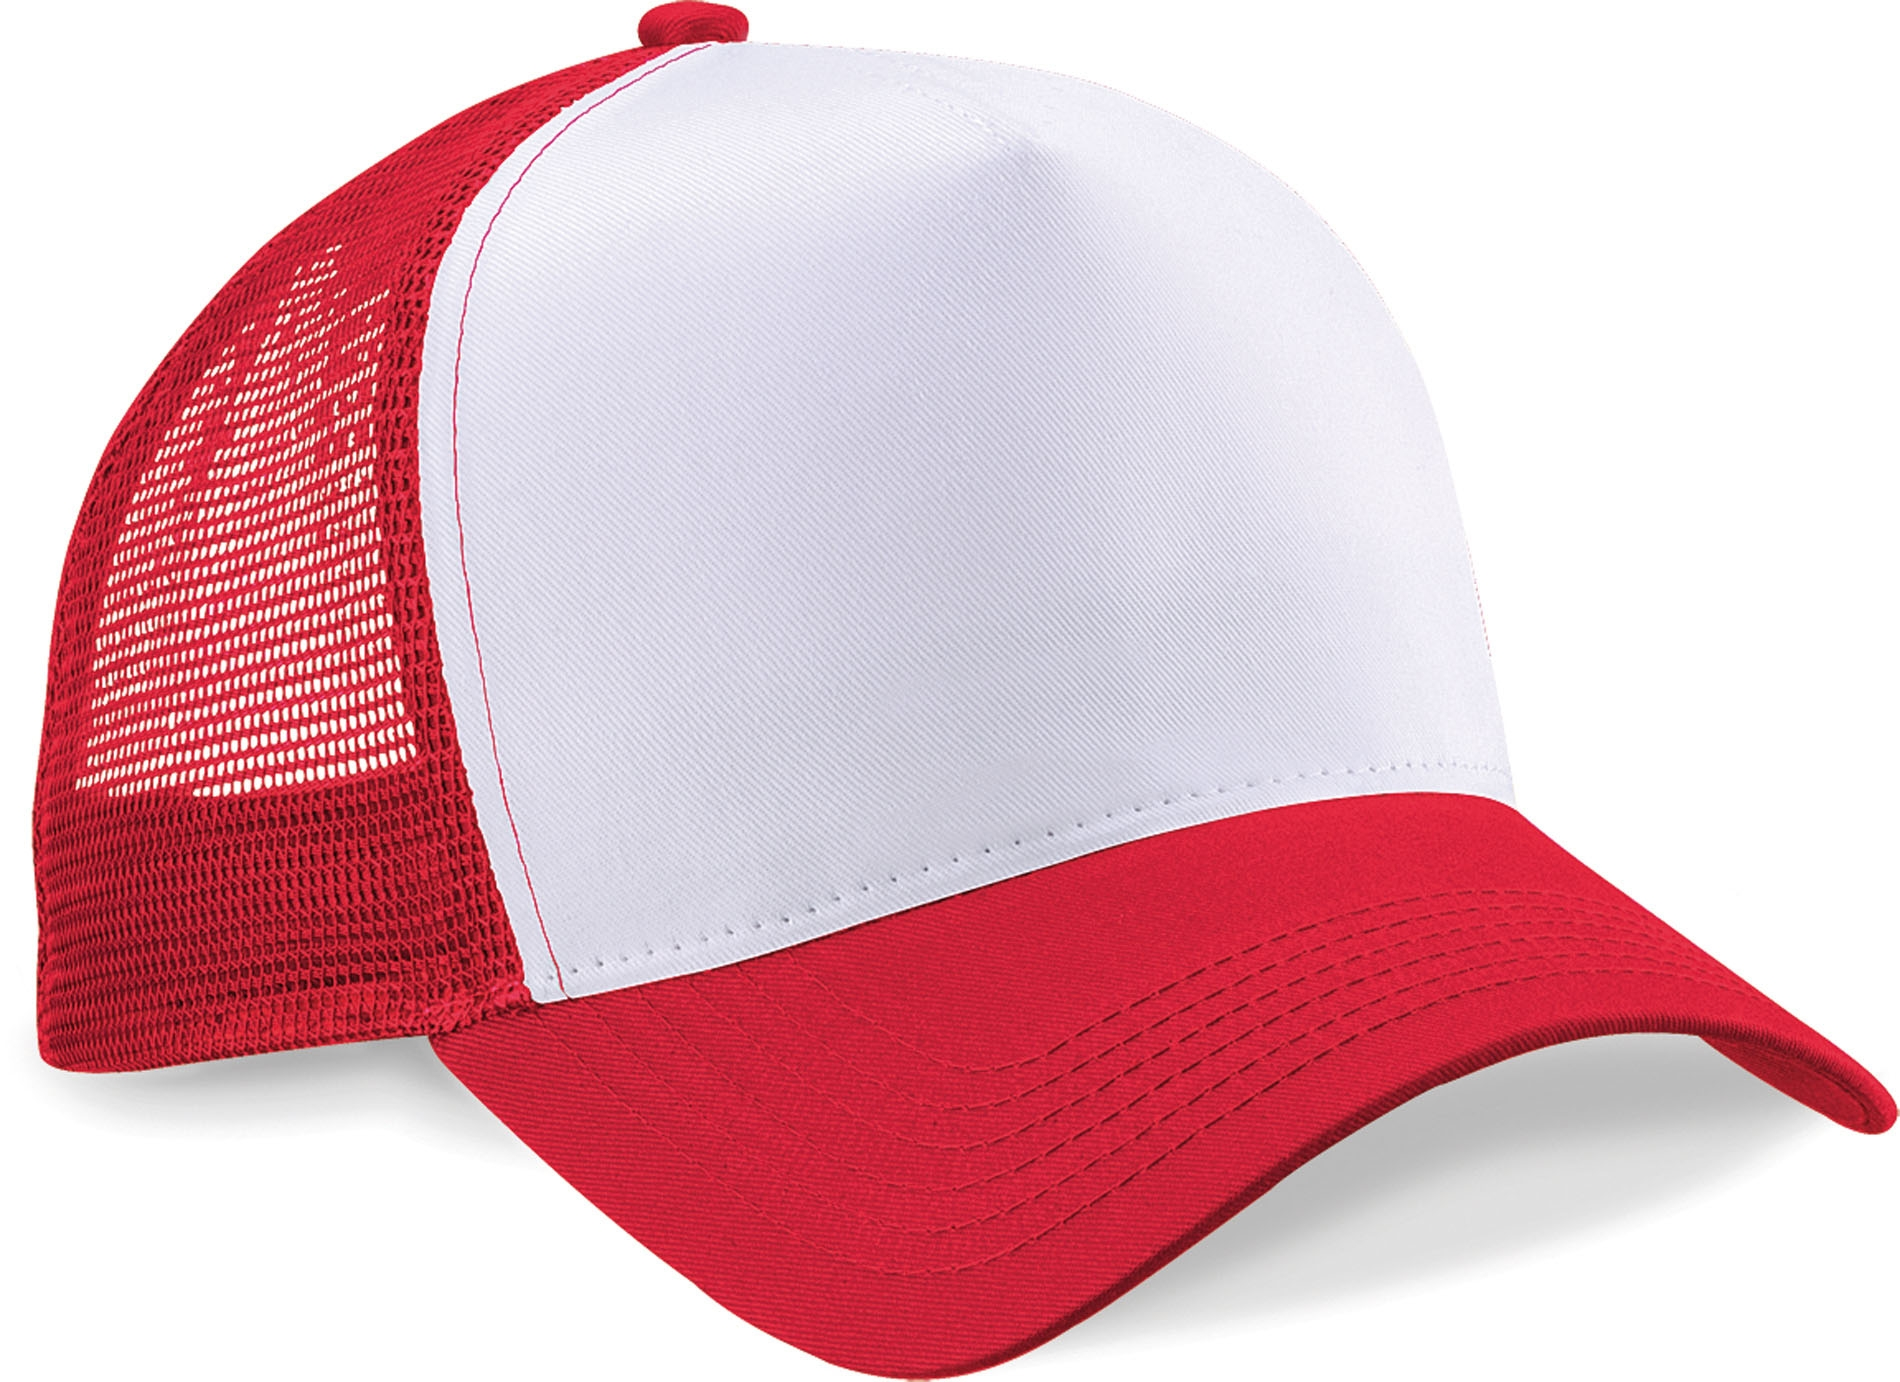 Casquette américaine Classic Red / White Rouge